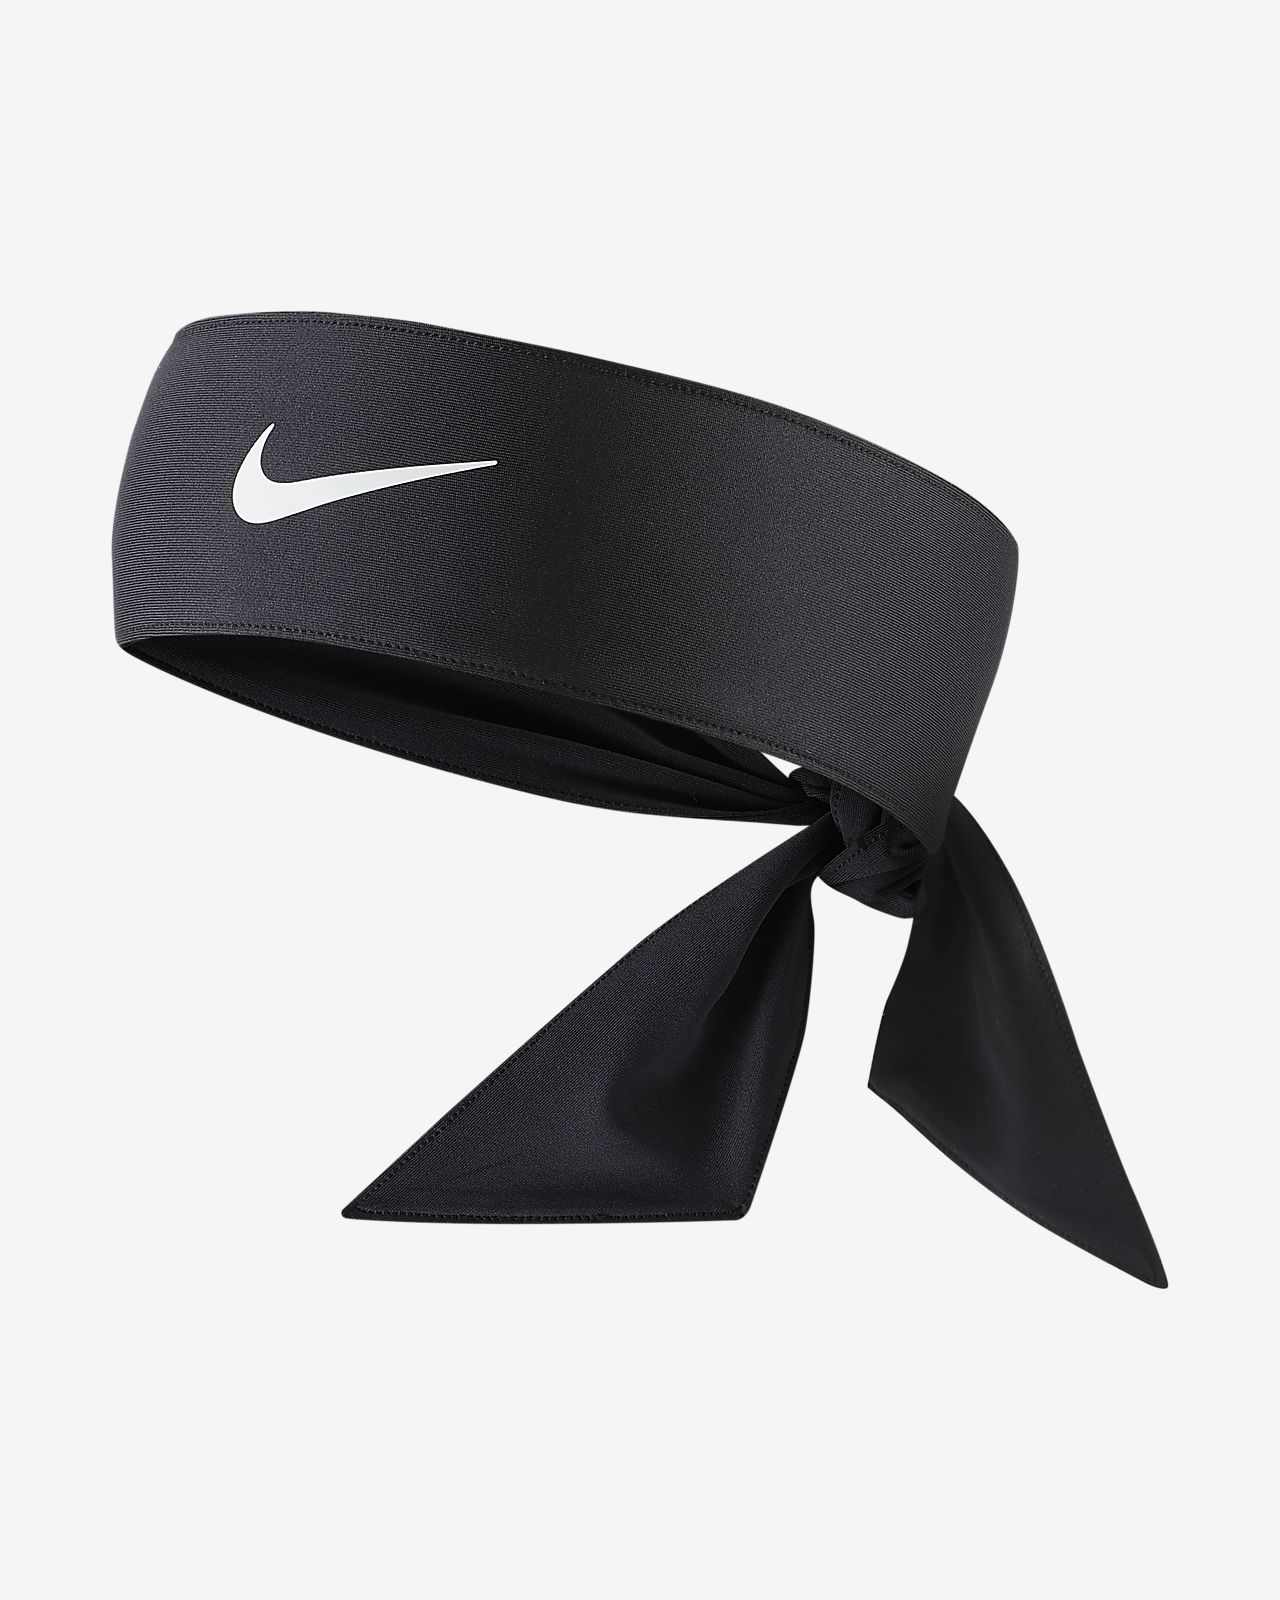 Nike Dri-FIT Stirnband 3.0